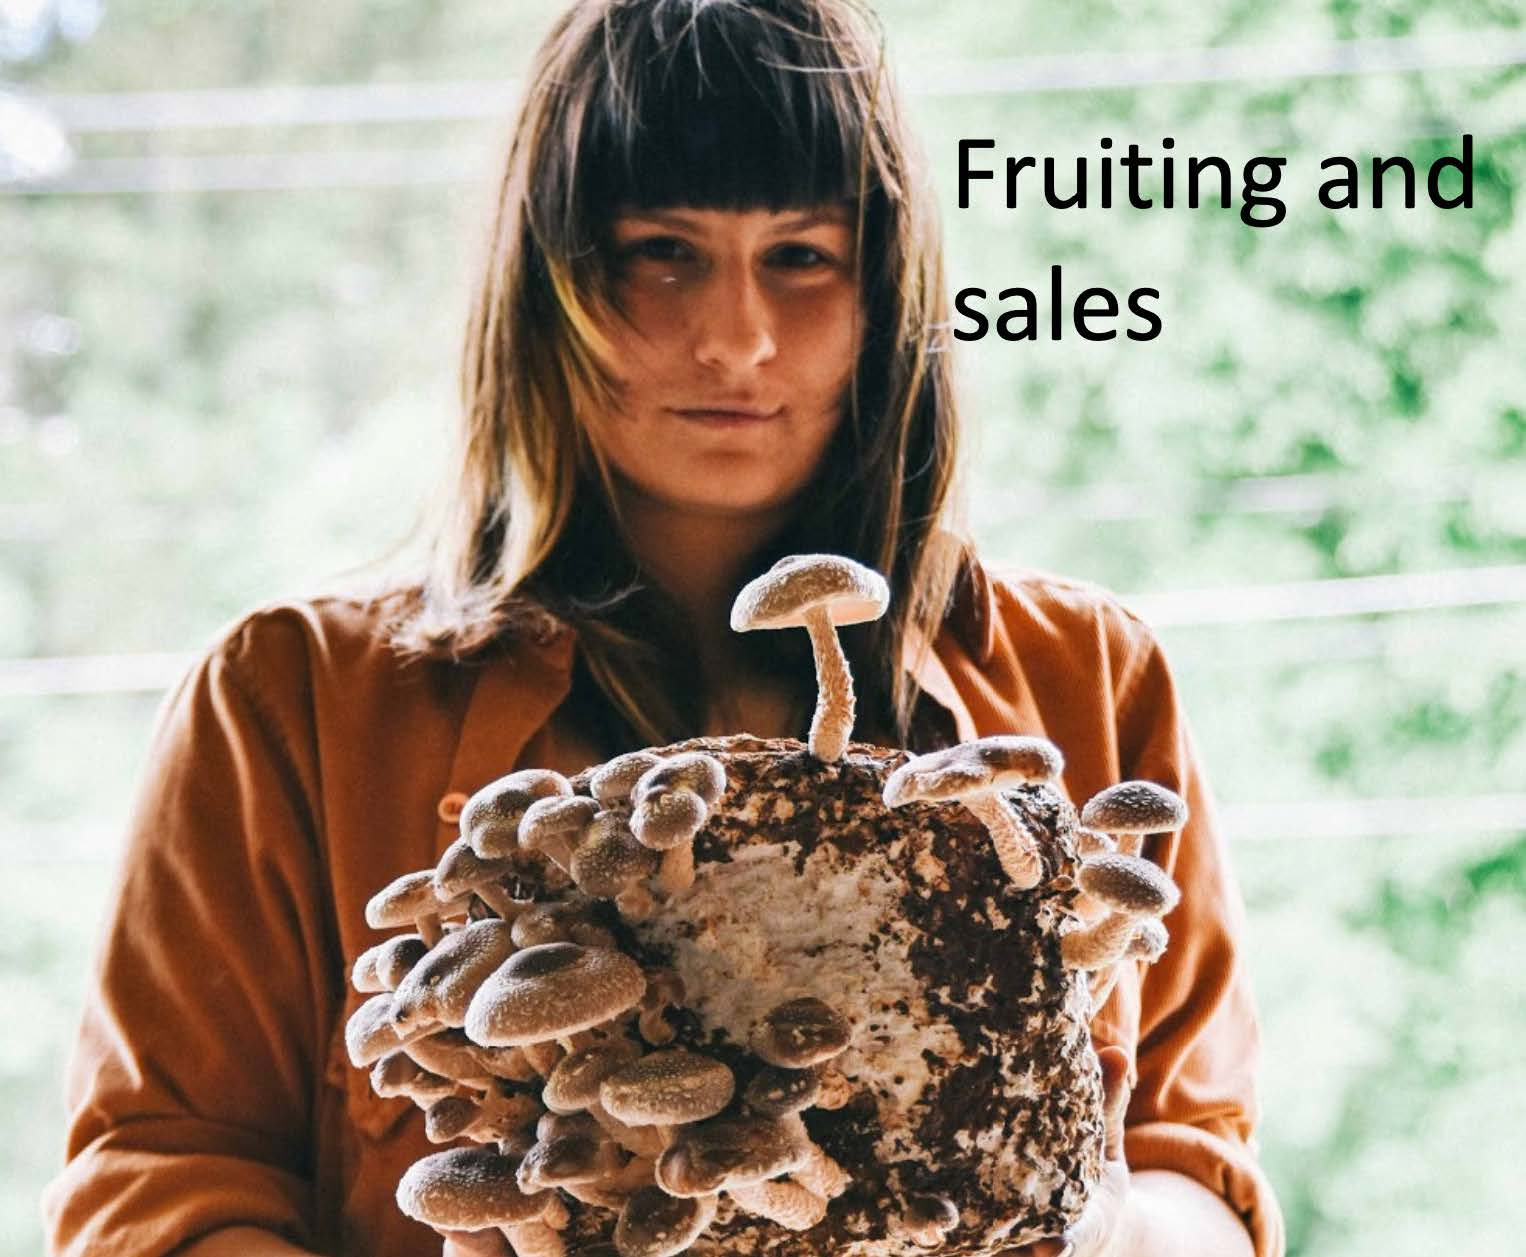 Fruiting and Sales